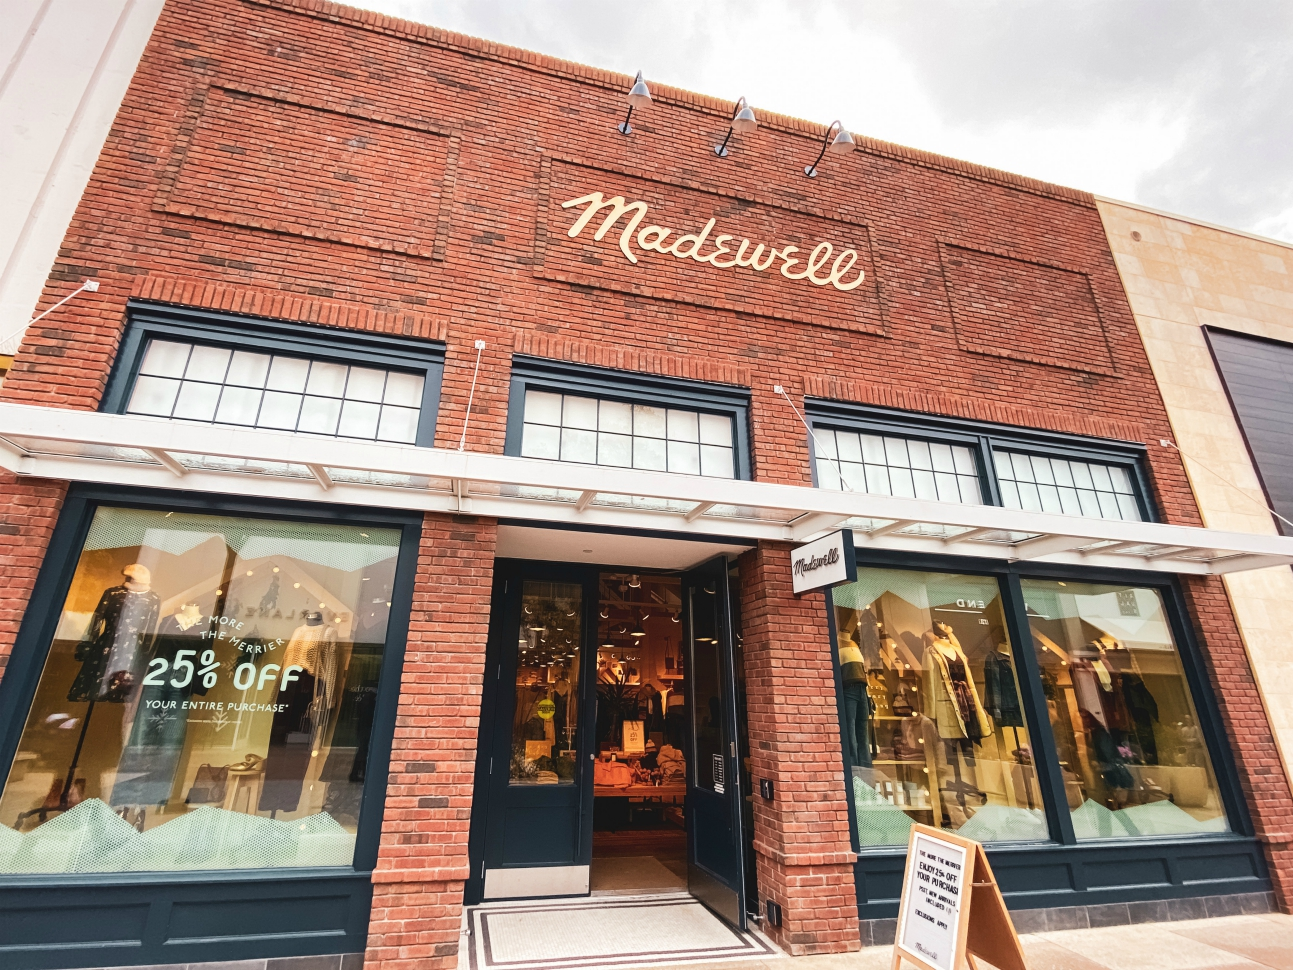 As the coronavirus outbreak roils markets, IPOs seem to be taking a hit as both Cole Haan and J.Crew's spinoff of Madewell are delayed.